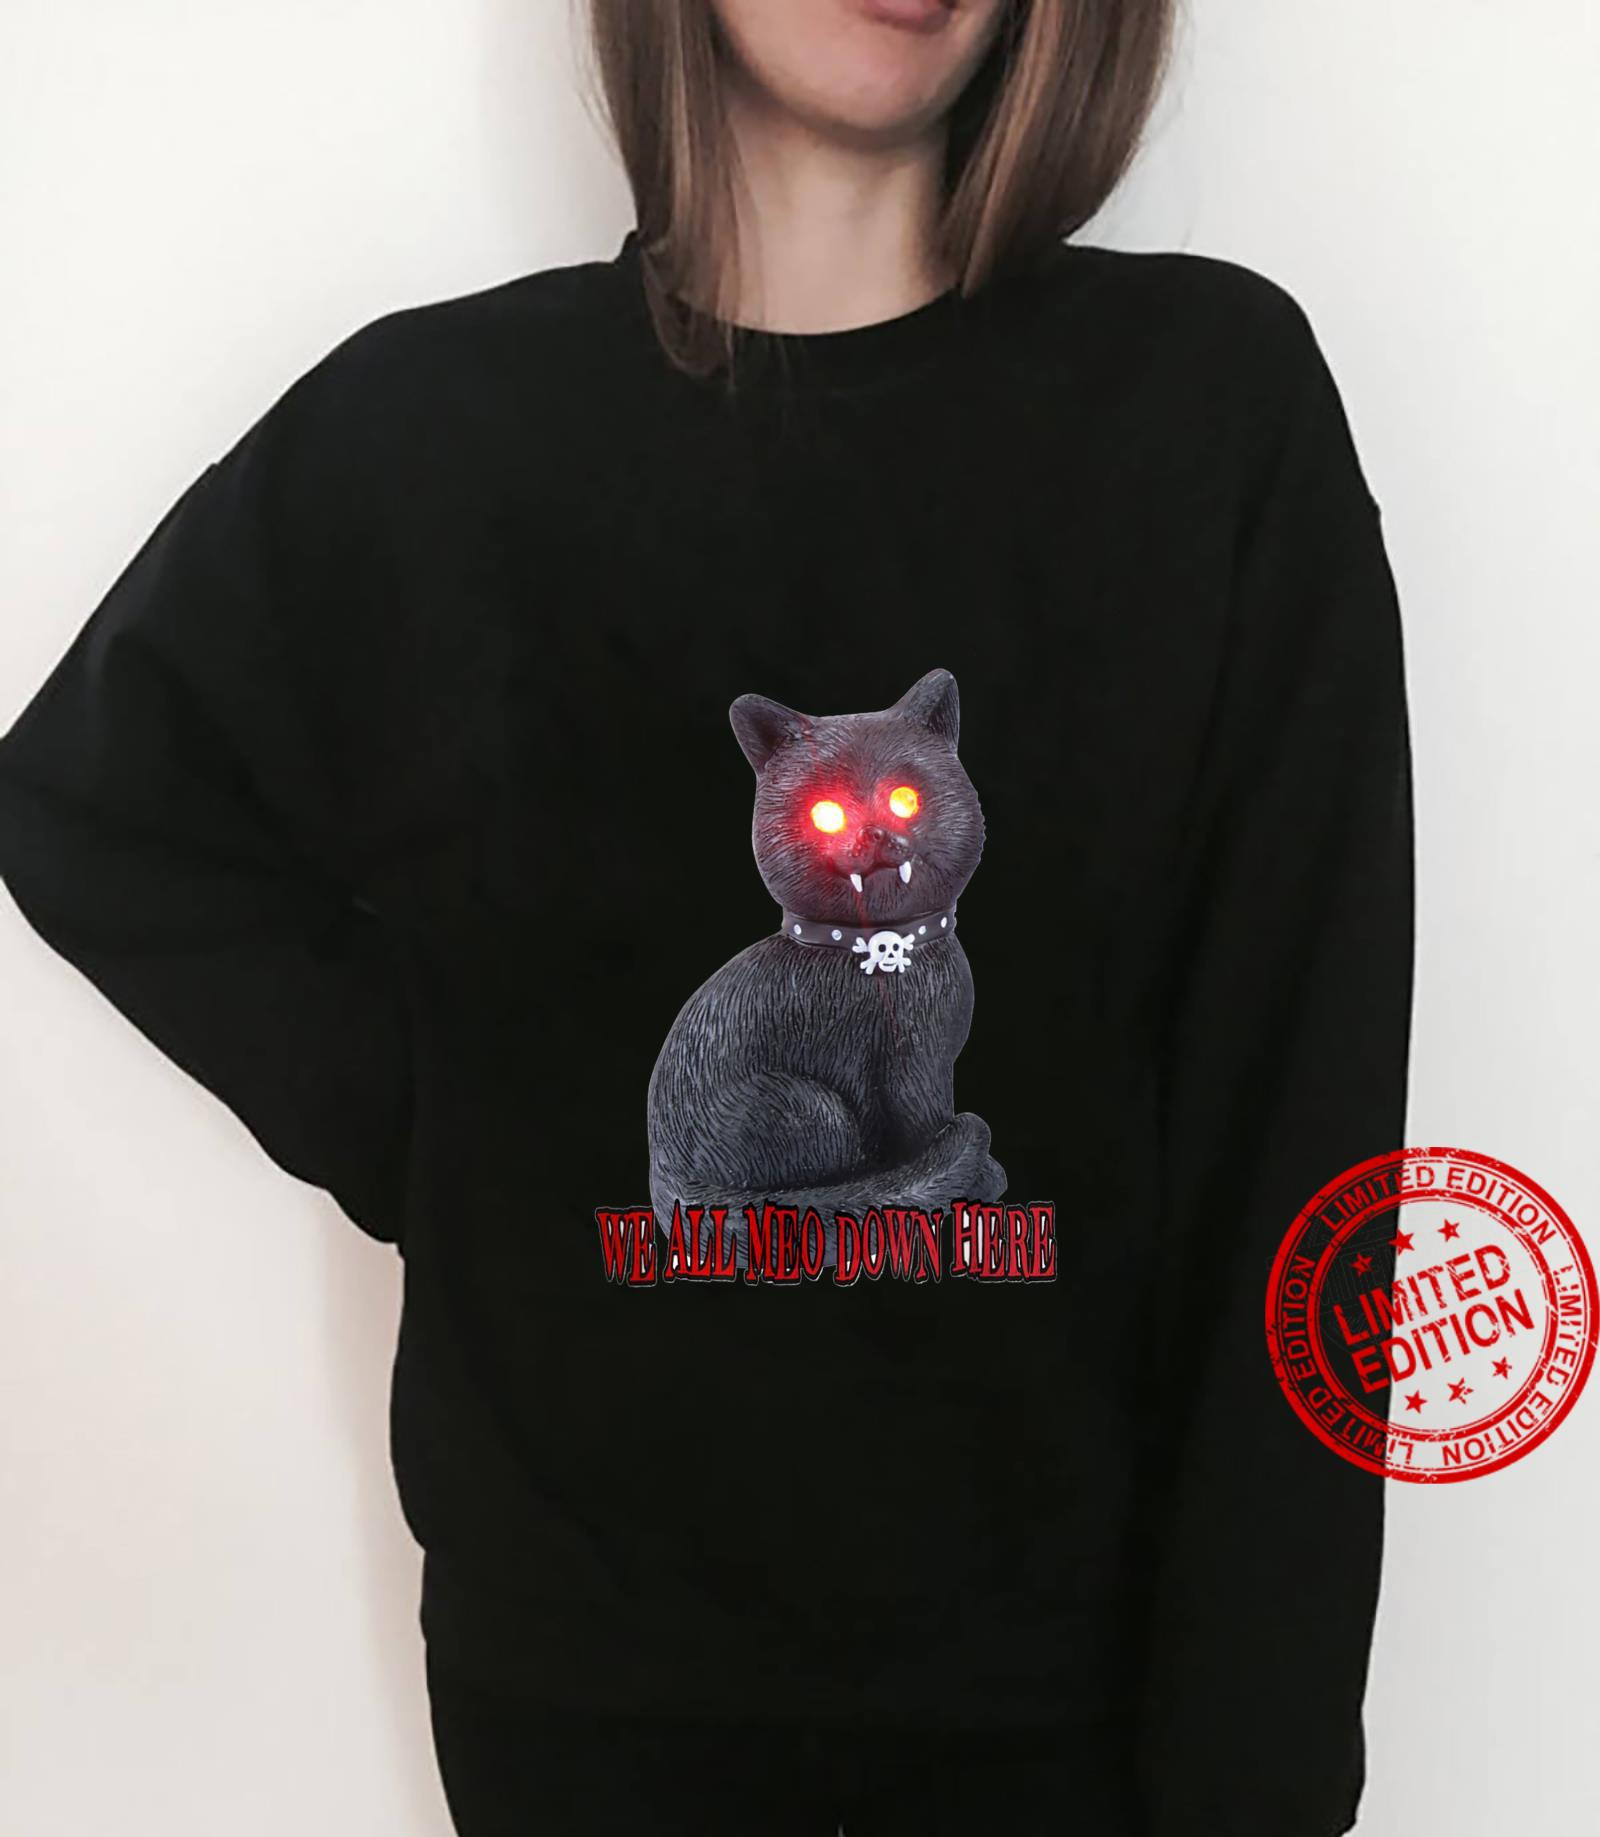 spooky cat - we all meo down here Shirt sweater